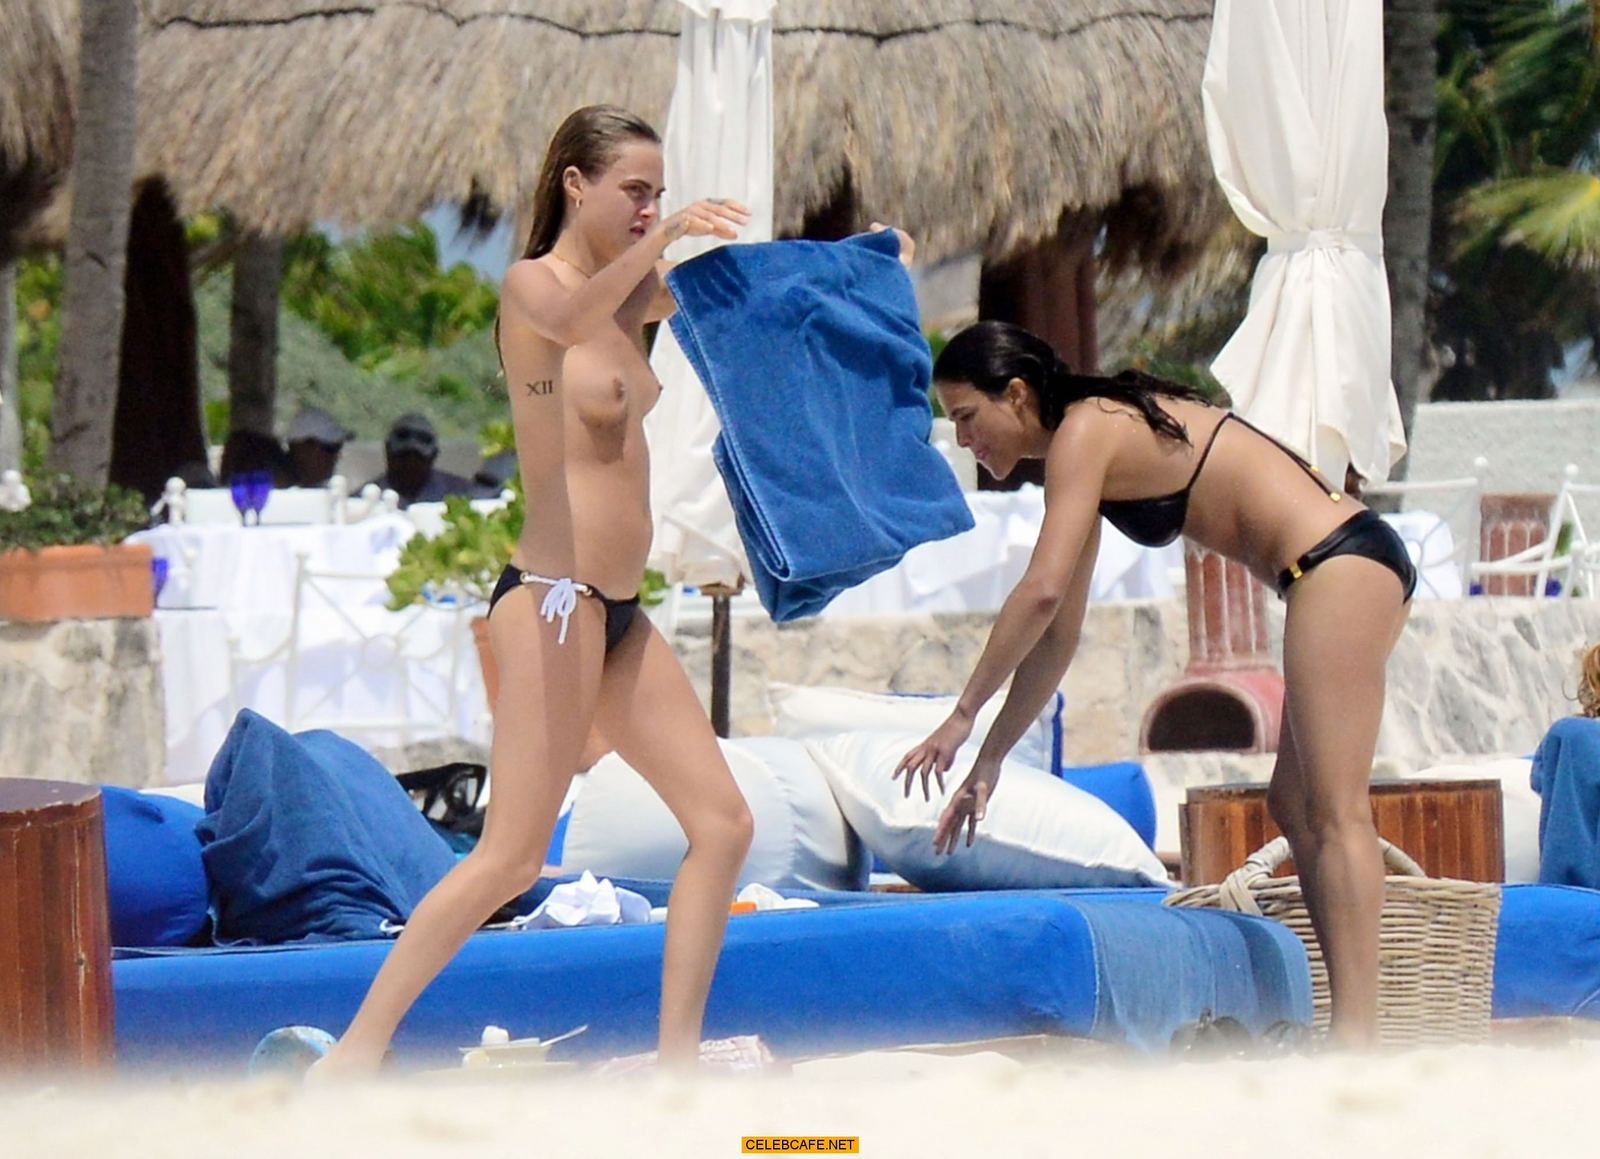 Cara Delevingne topless and Michelle Rodriguez in bikini on a Beach in ...